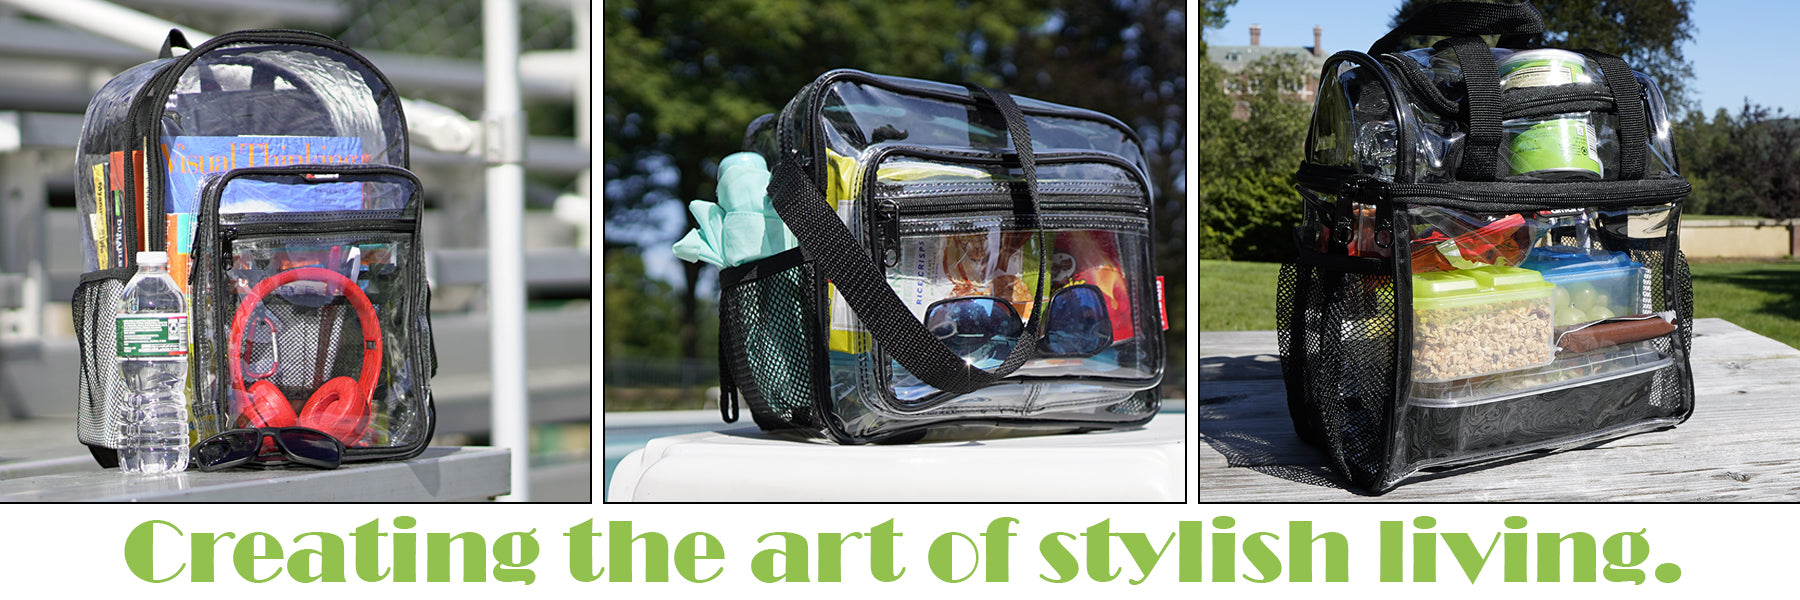 clear backpack, clear messenger bag, clear lunch bag for your everyday needs